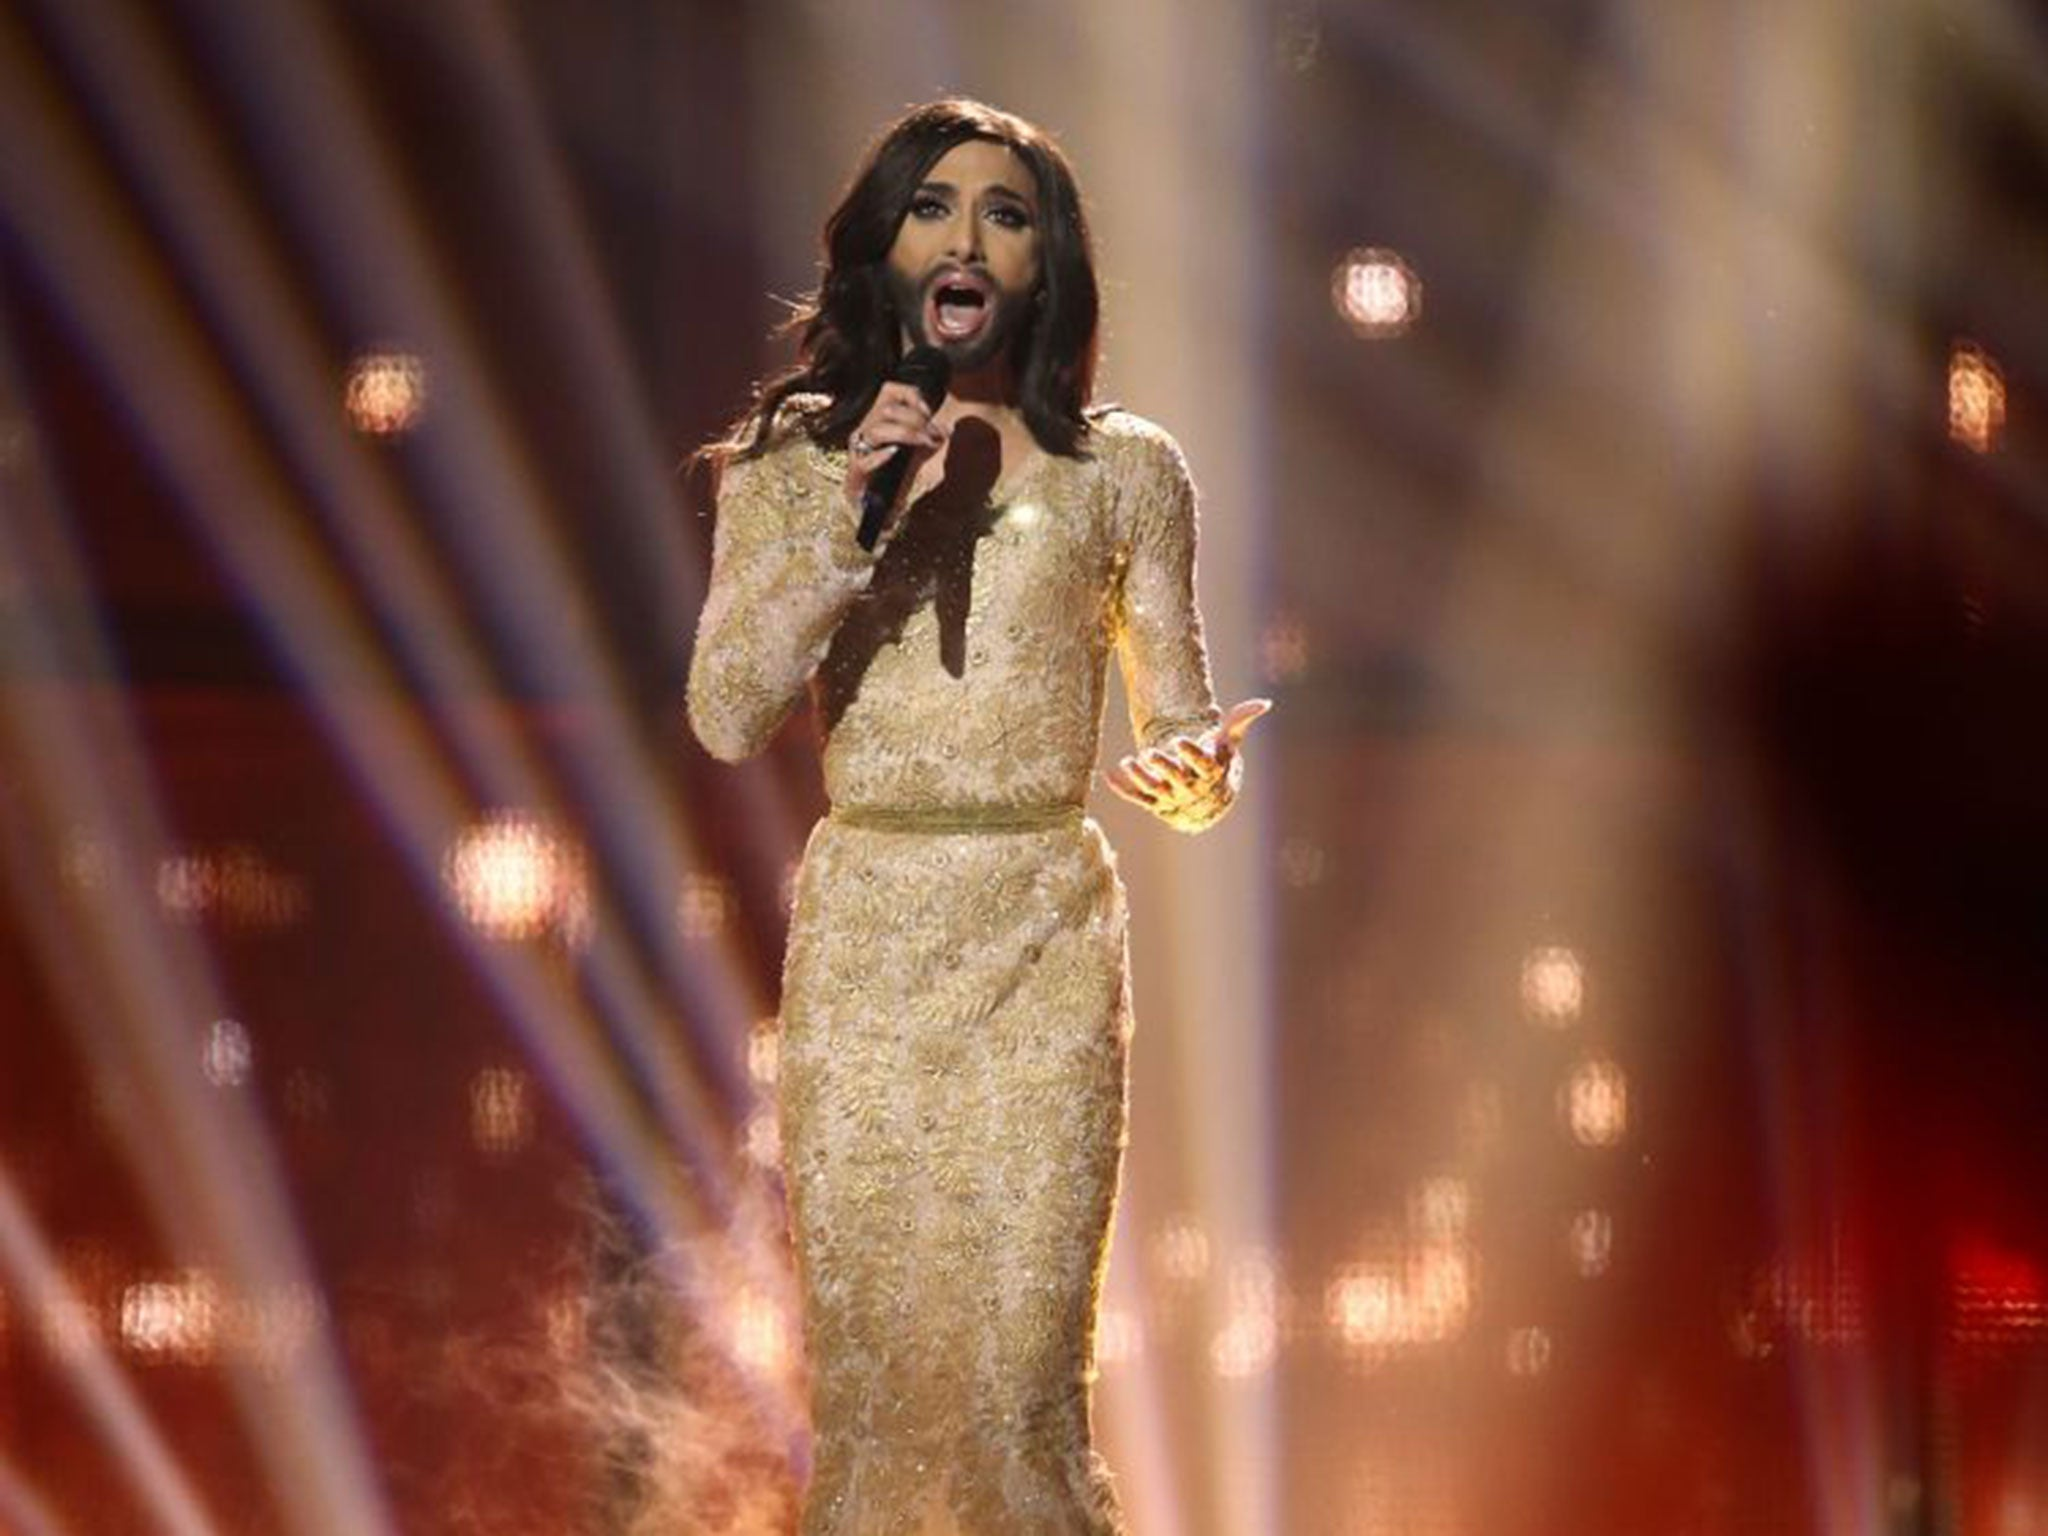 Conchita wurst and dana international in eurovision first star - Eurovision 2017 Most Controversial Acts Of All Time From Conchita Wurst To Israel Waving Syrian Flags The Independent